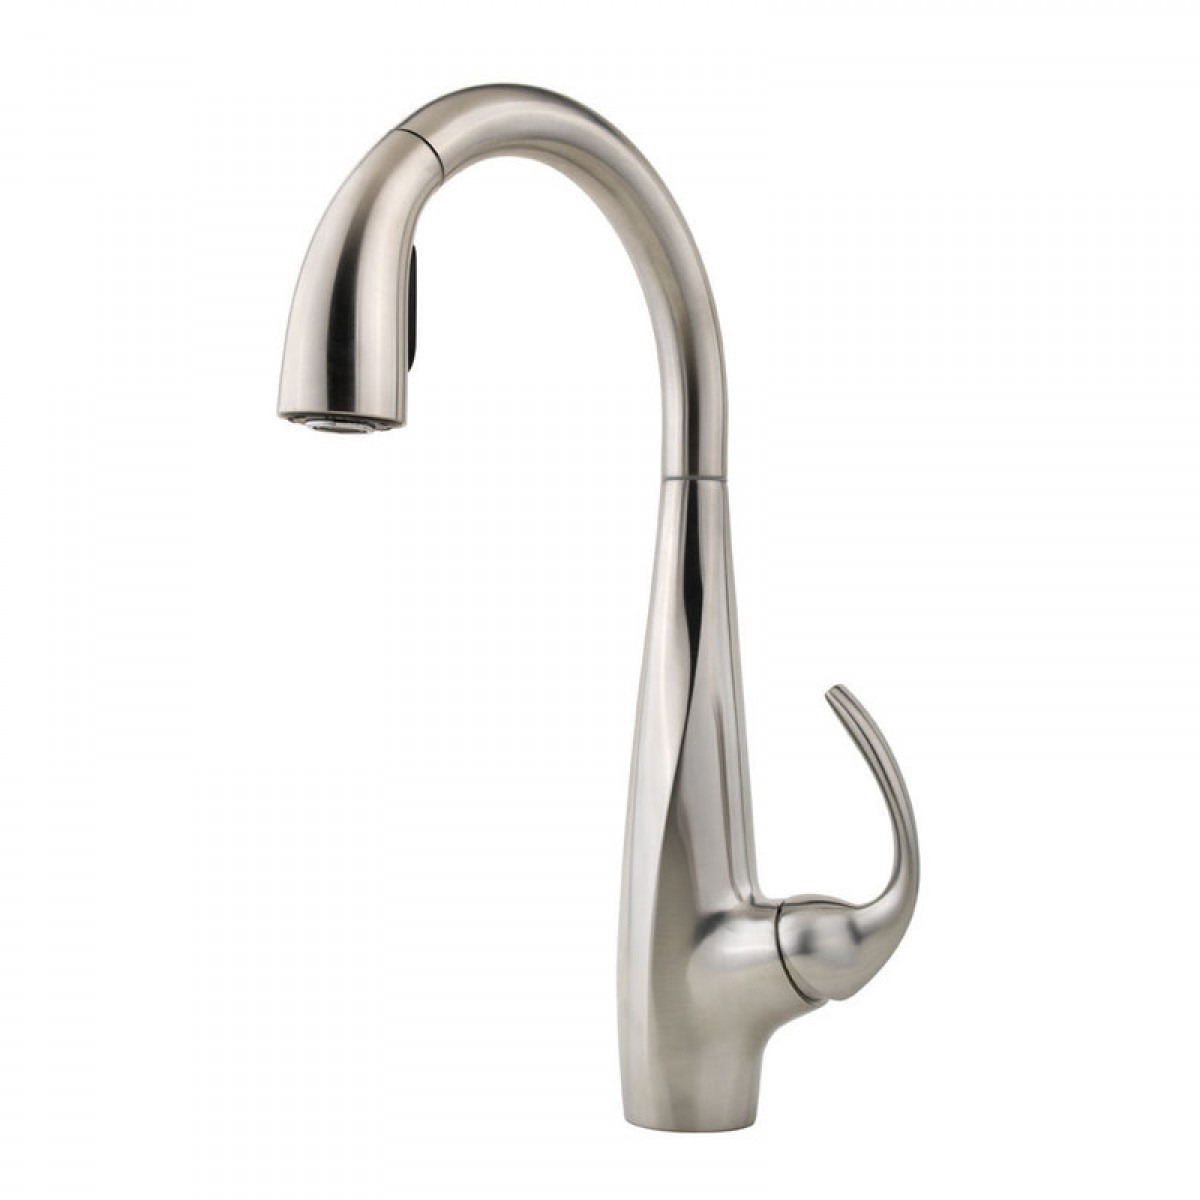 Pfister Avanti Single Handle Lead Free Pull Out Kitchen Faucet